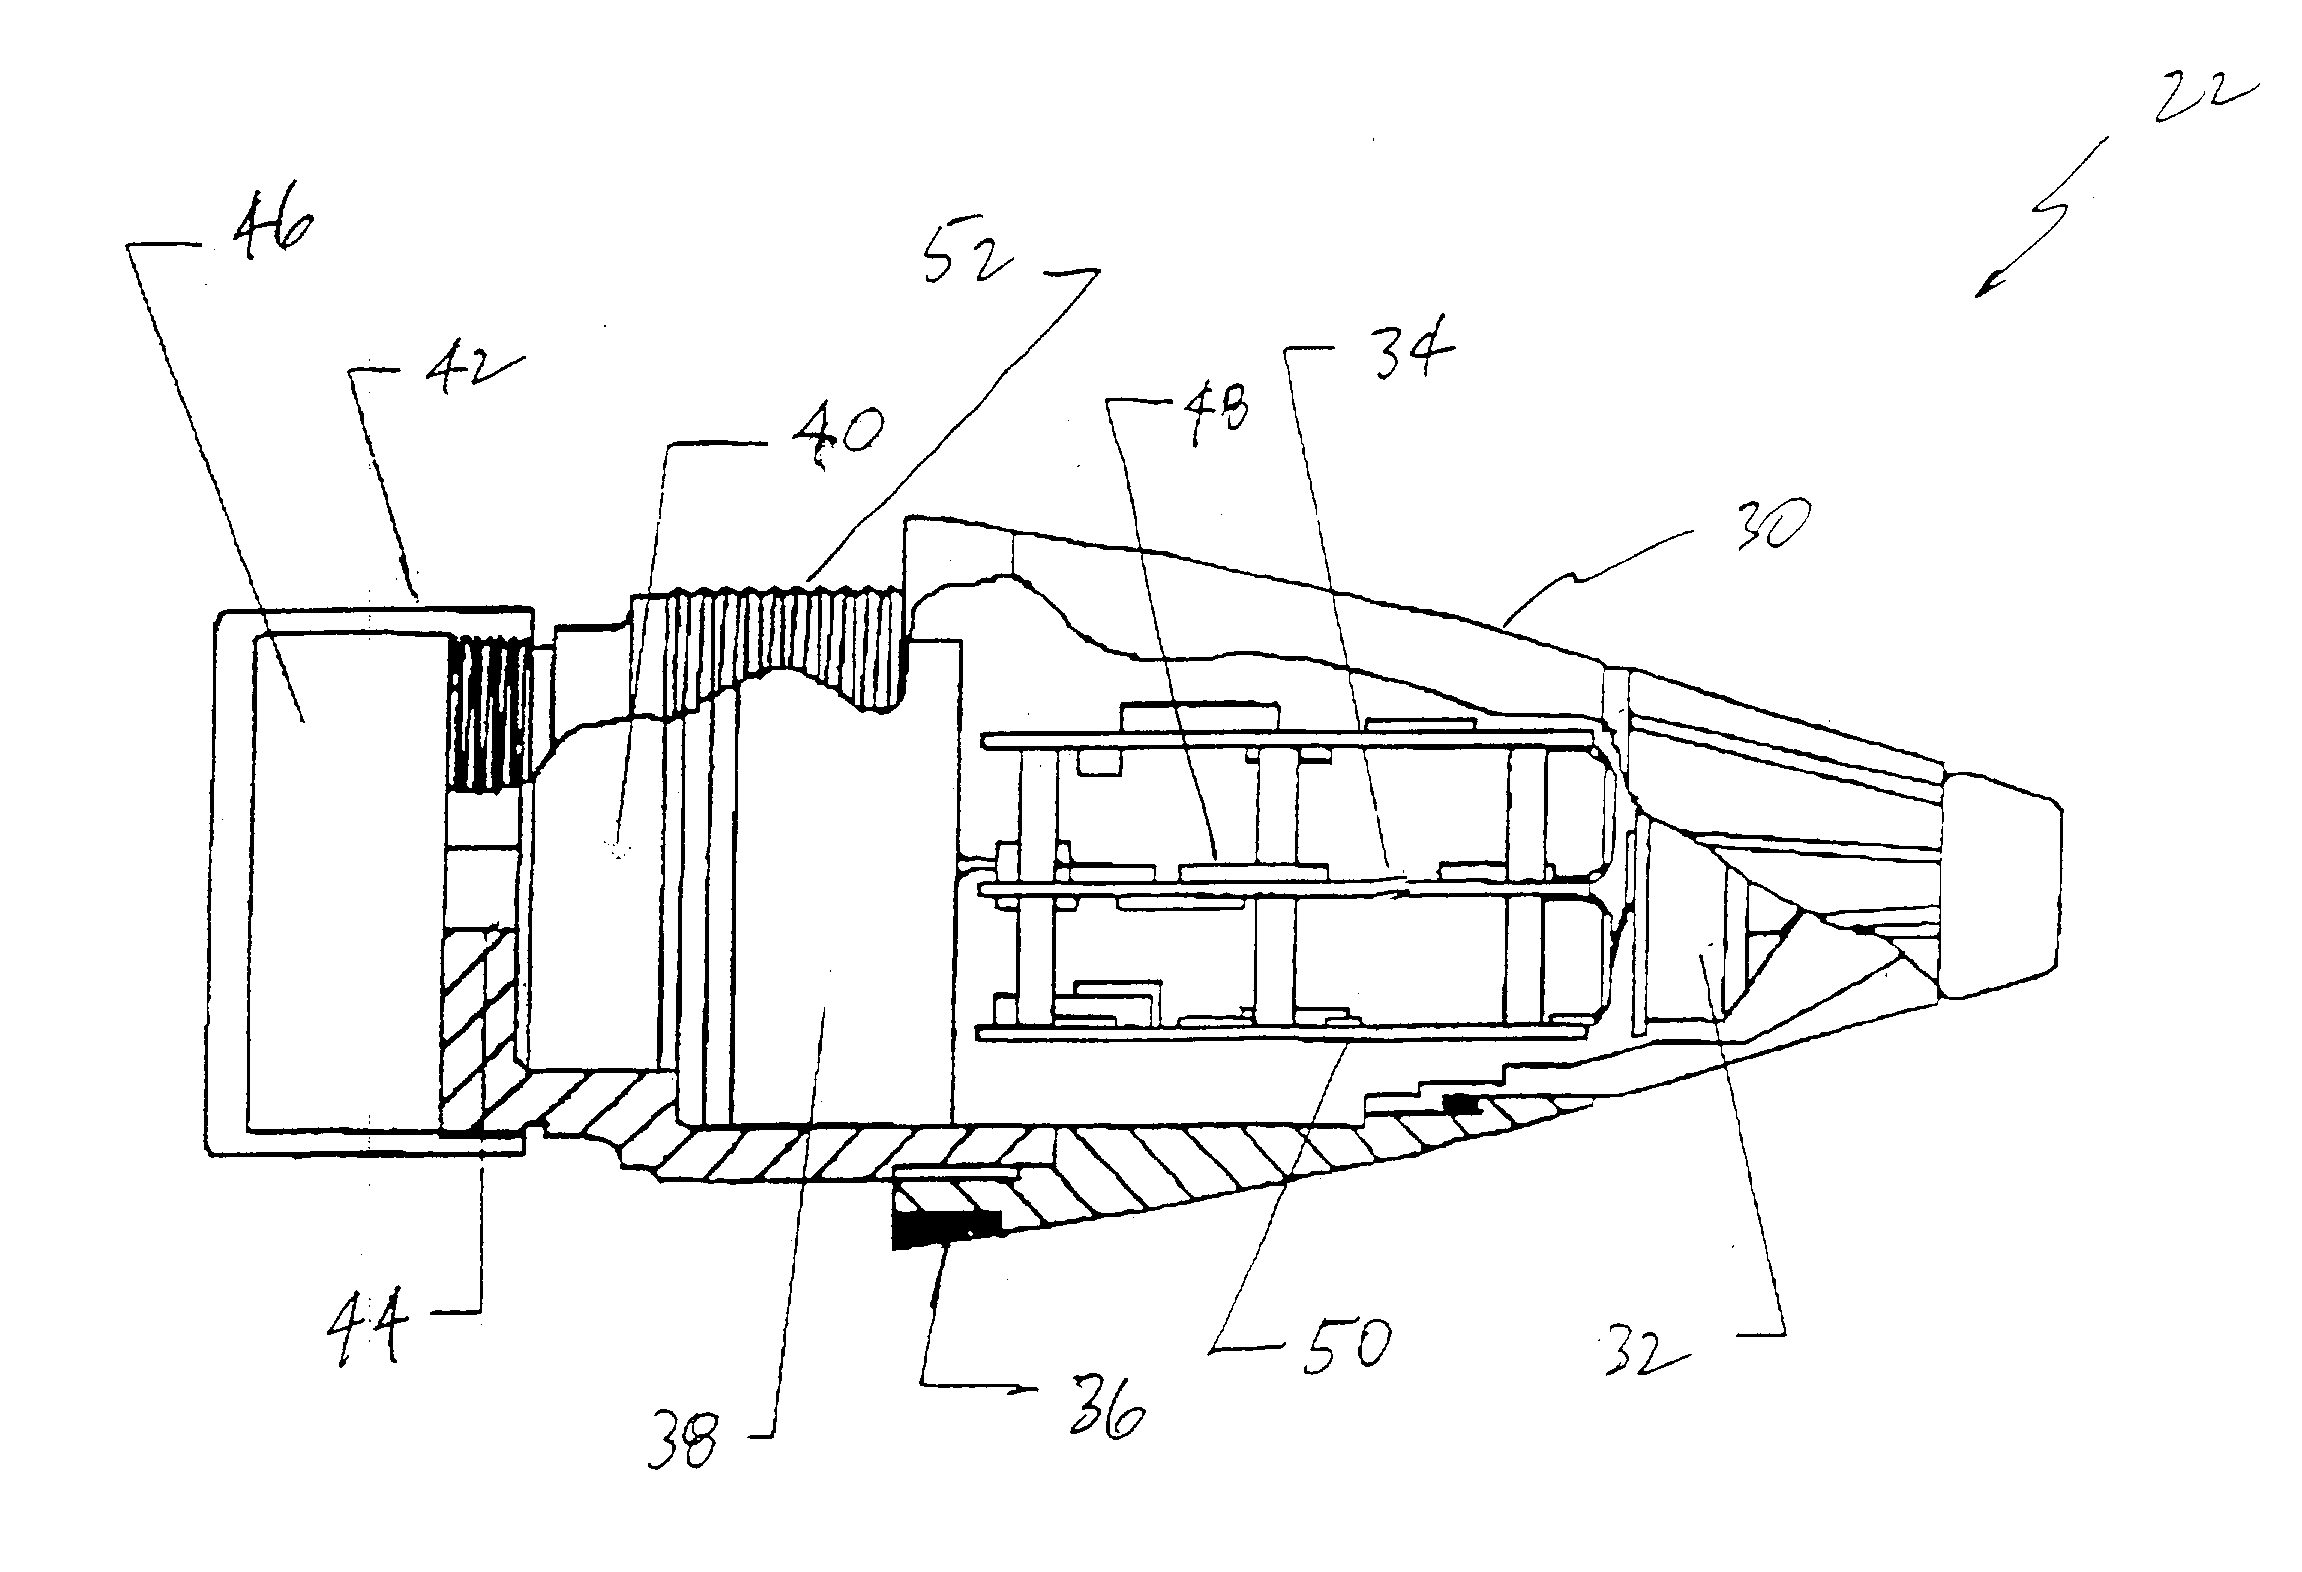 Patent Us20040159261 Accuracy Fuze For Airburst Cargo Delivery Dodge 47re Transmission Wiring Diagram Drawing